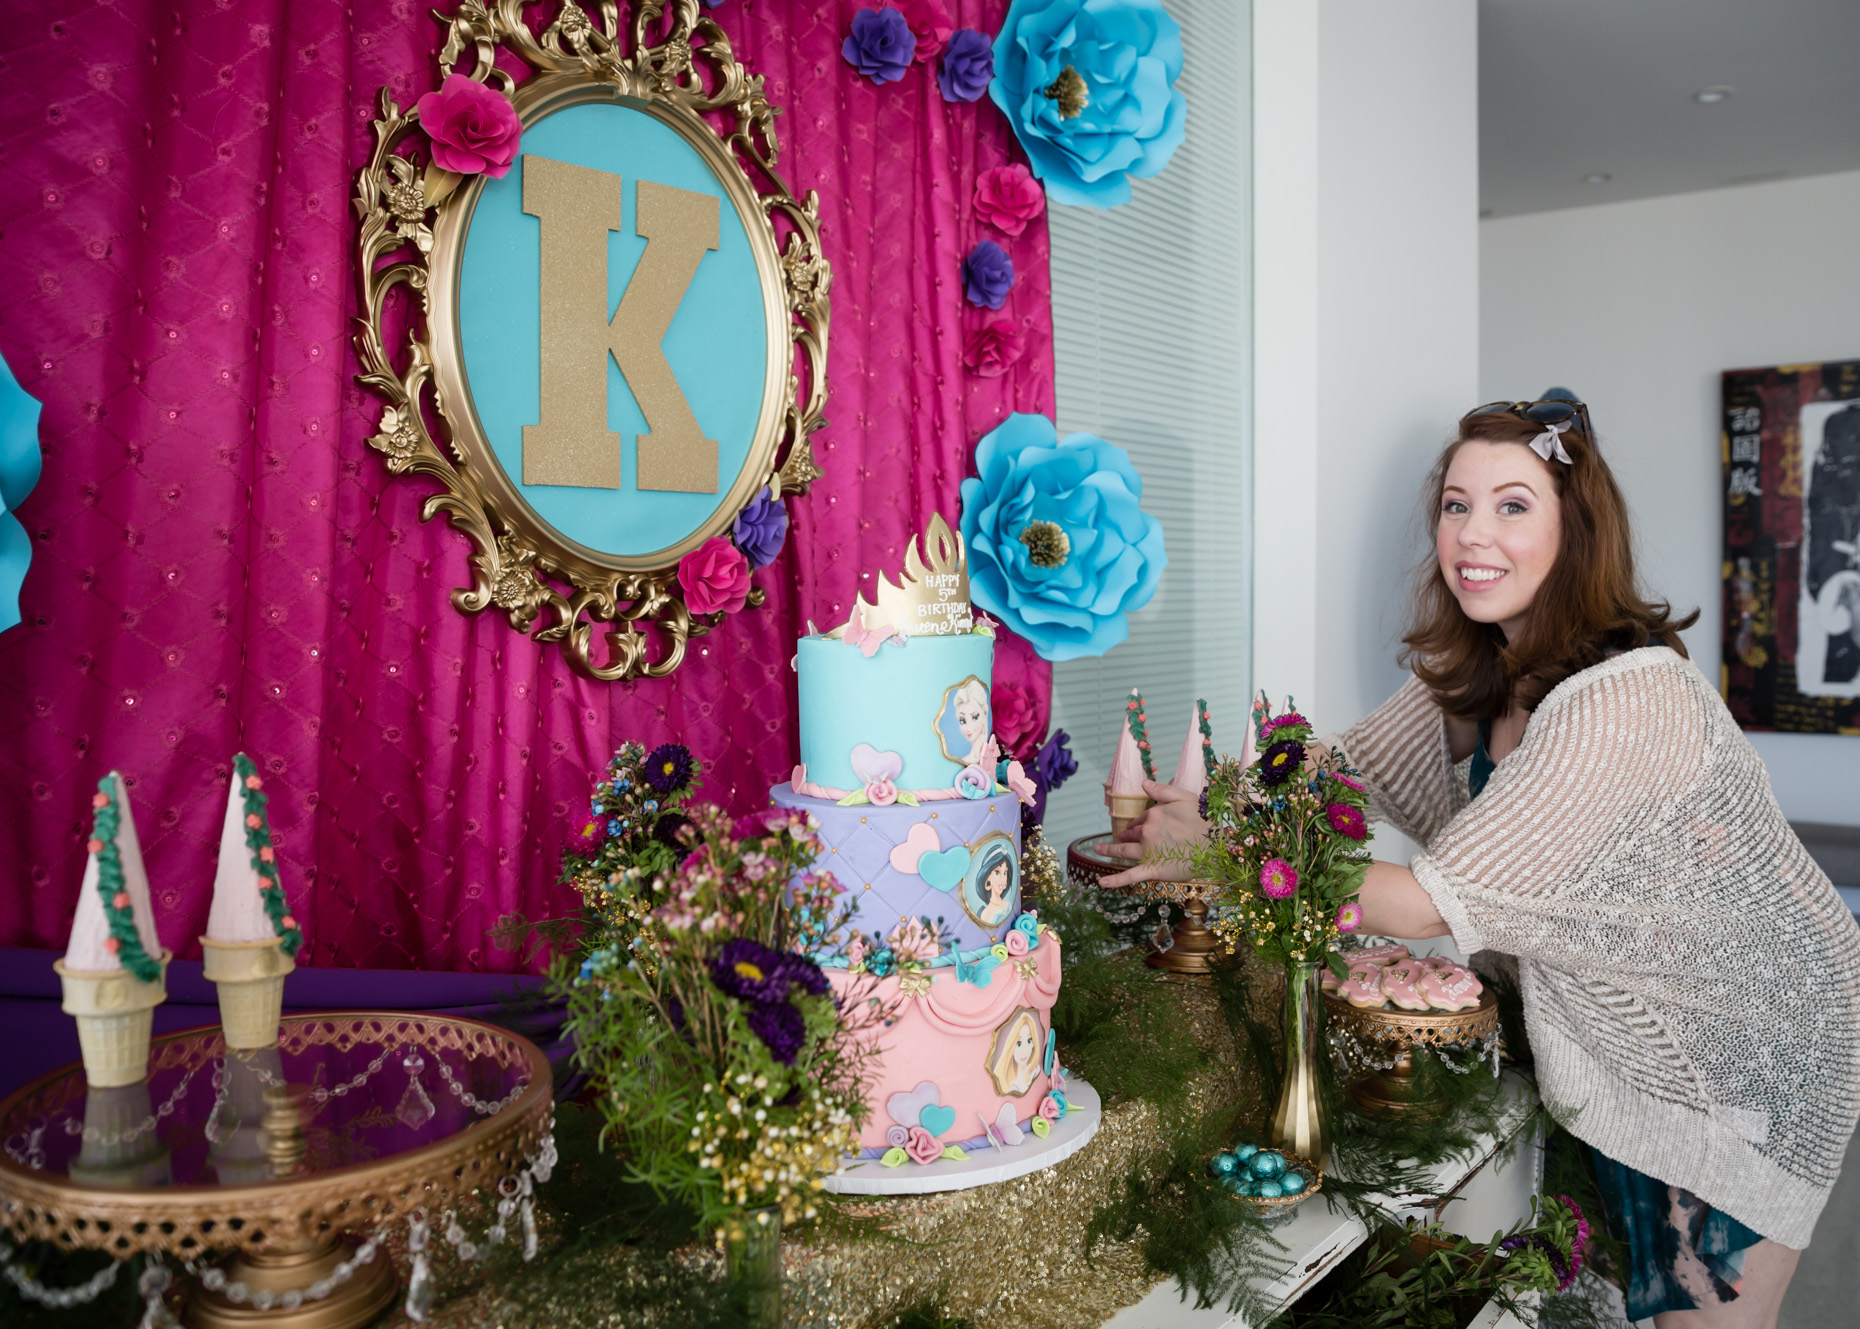 This is me making my finishing touches to the dessert table at an upscale princess party. The color palette was aqua, magenta, and violet with touches of gold. I was so in love with the florals our team designed for this event, and of course just look at that cake; t'was just as delicious as it was impressive. Photo by  Jeff Drongowski .